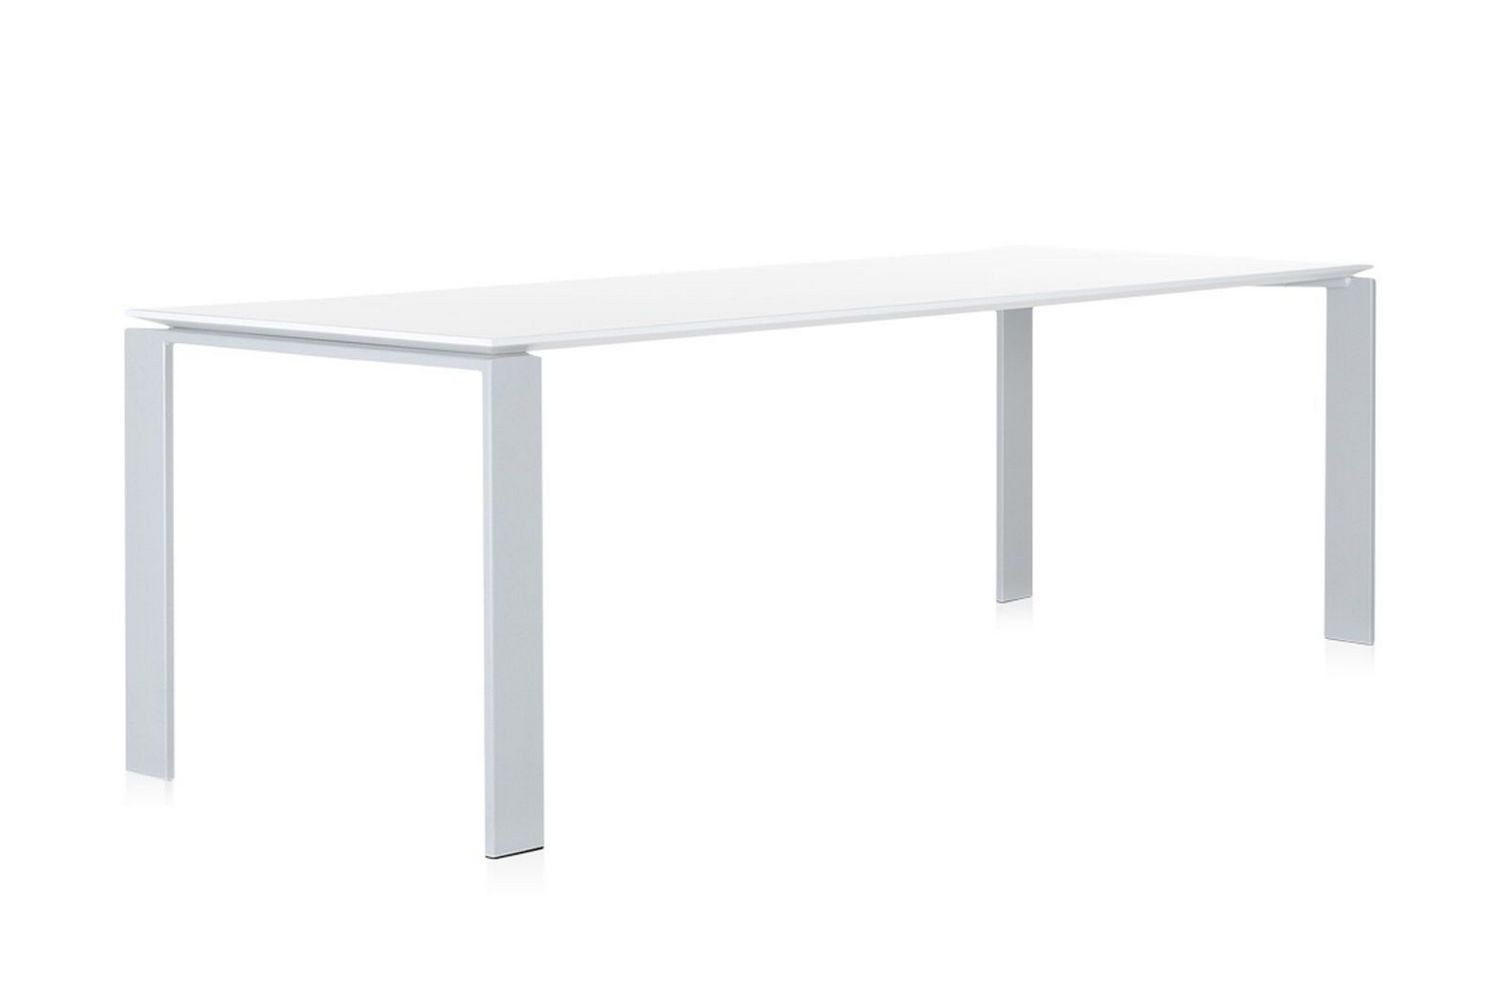 Four Large Table by Ferruccio Laviani for Kartell